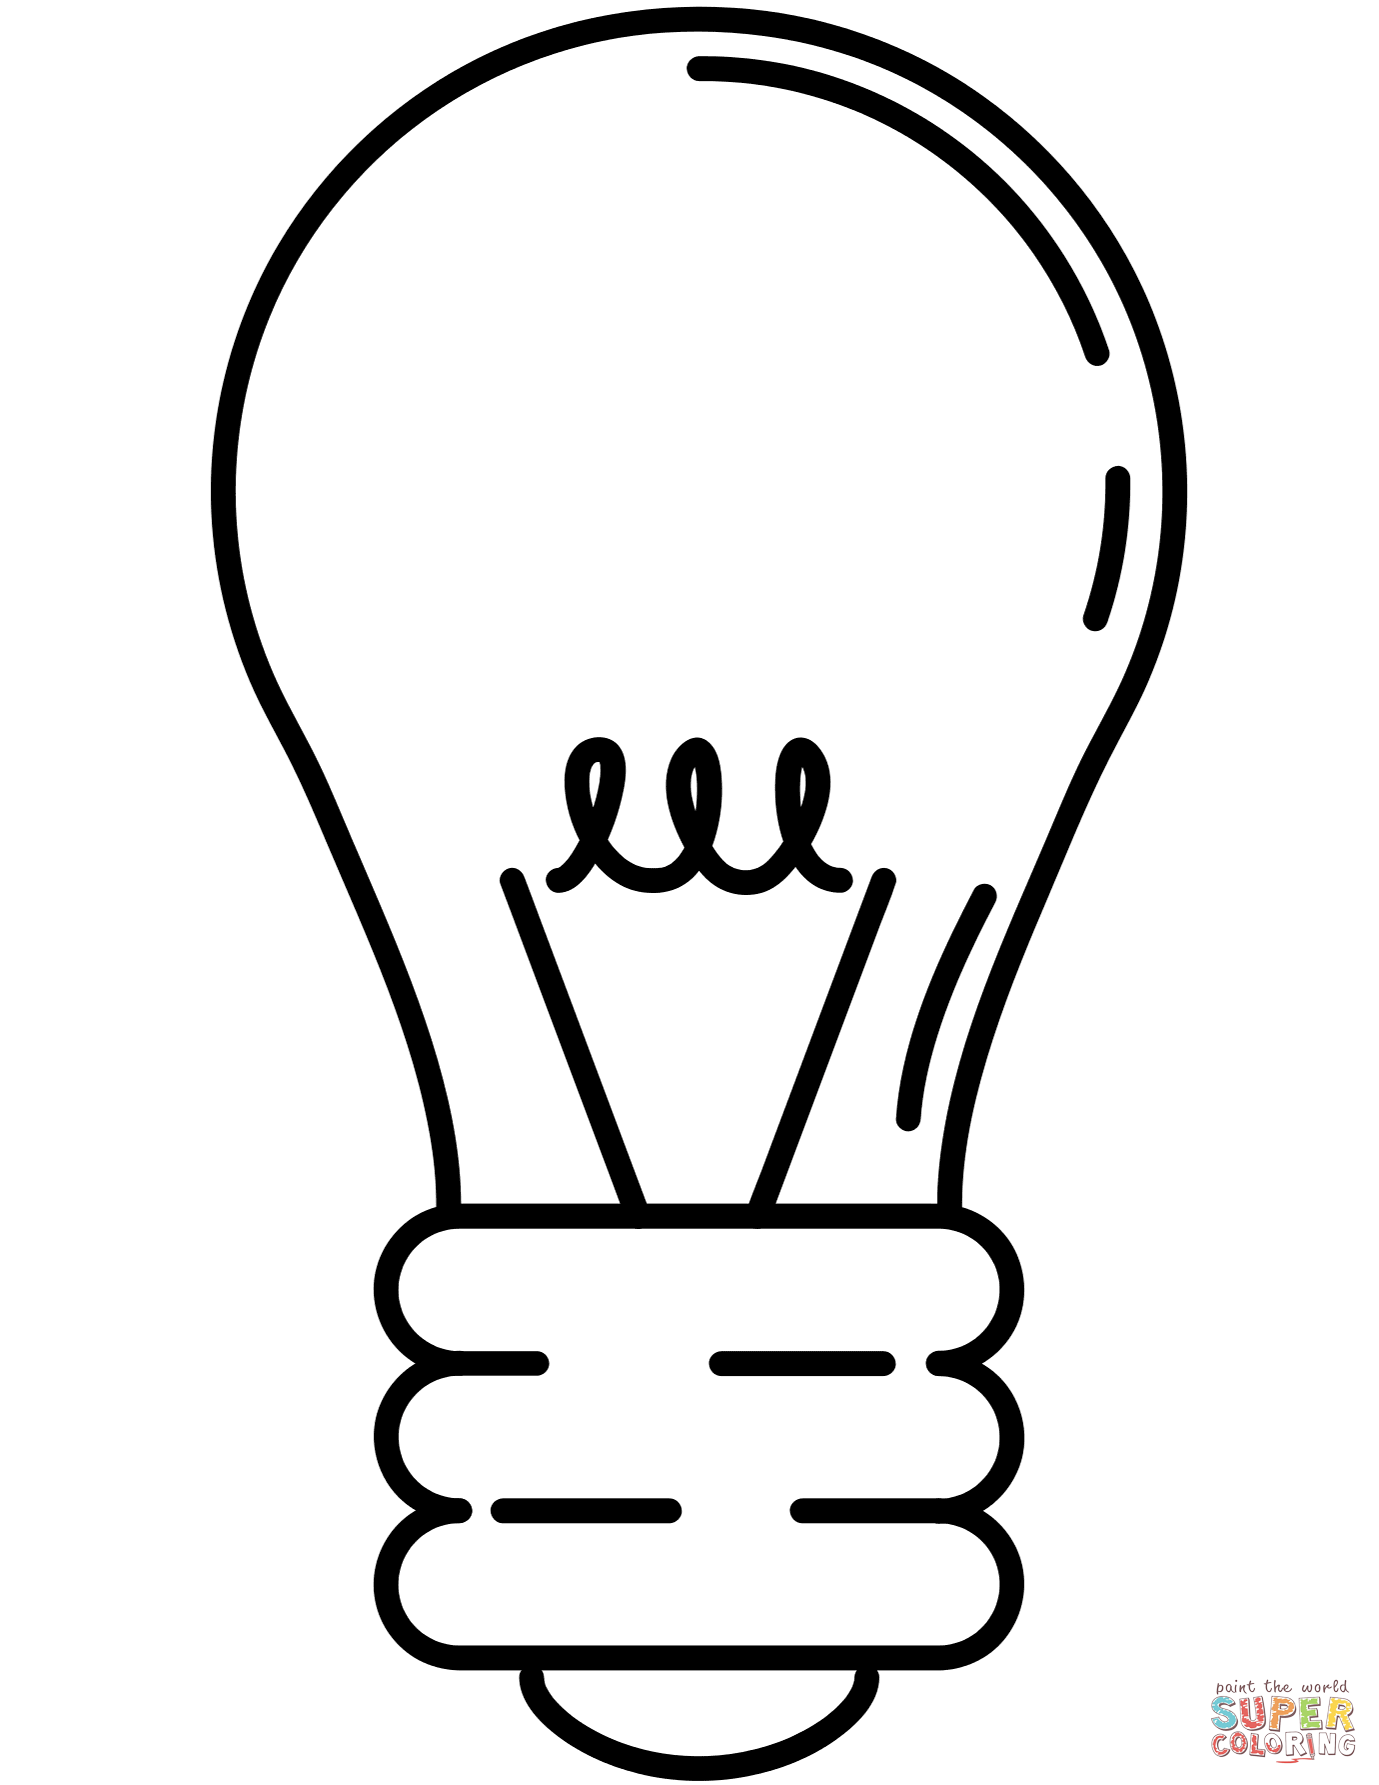 Lightbulb coloring page | Free Printable Coloring Pages